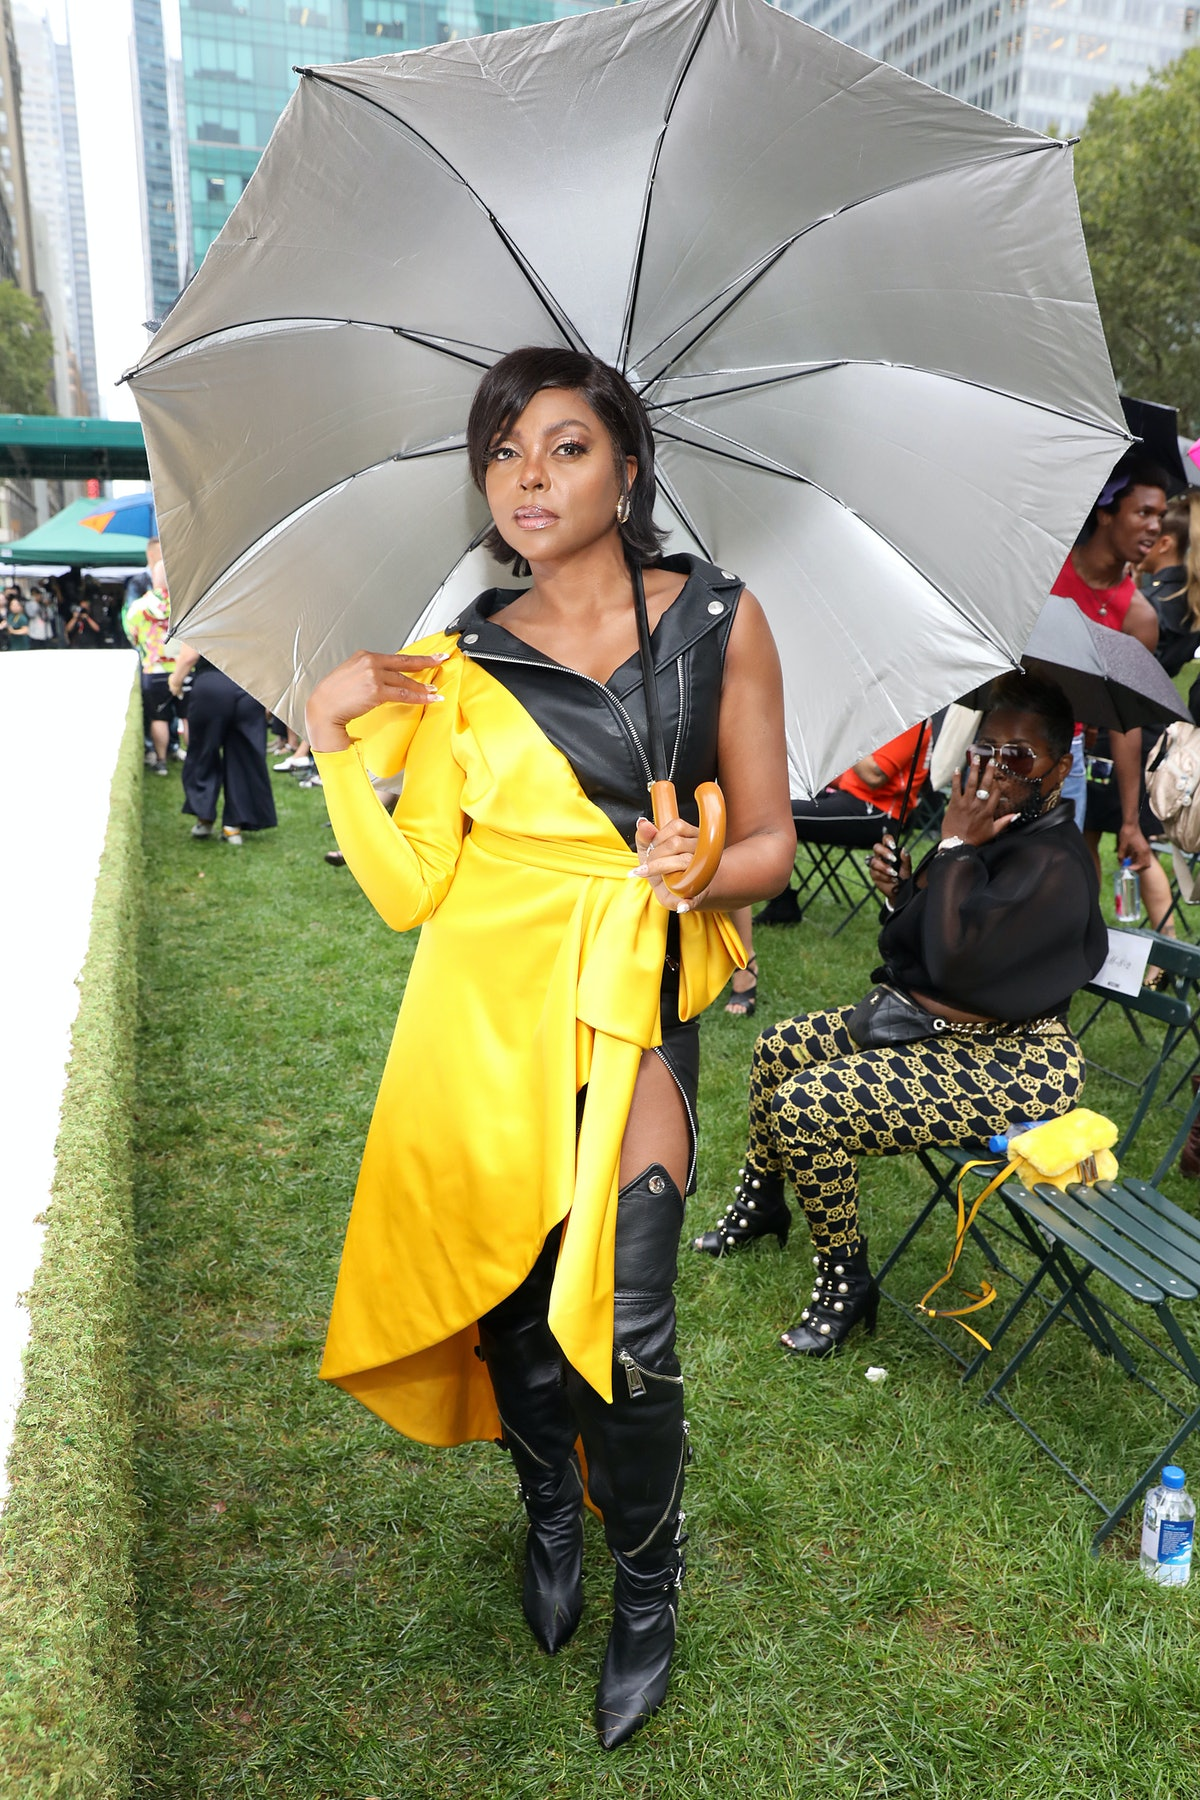 Taraji P. Henson attends the Moschino SS22 show on September 09, 2021 in New York City.